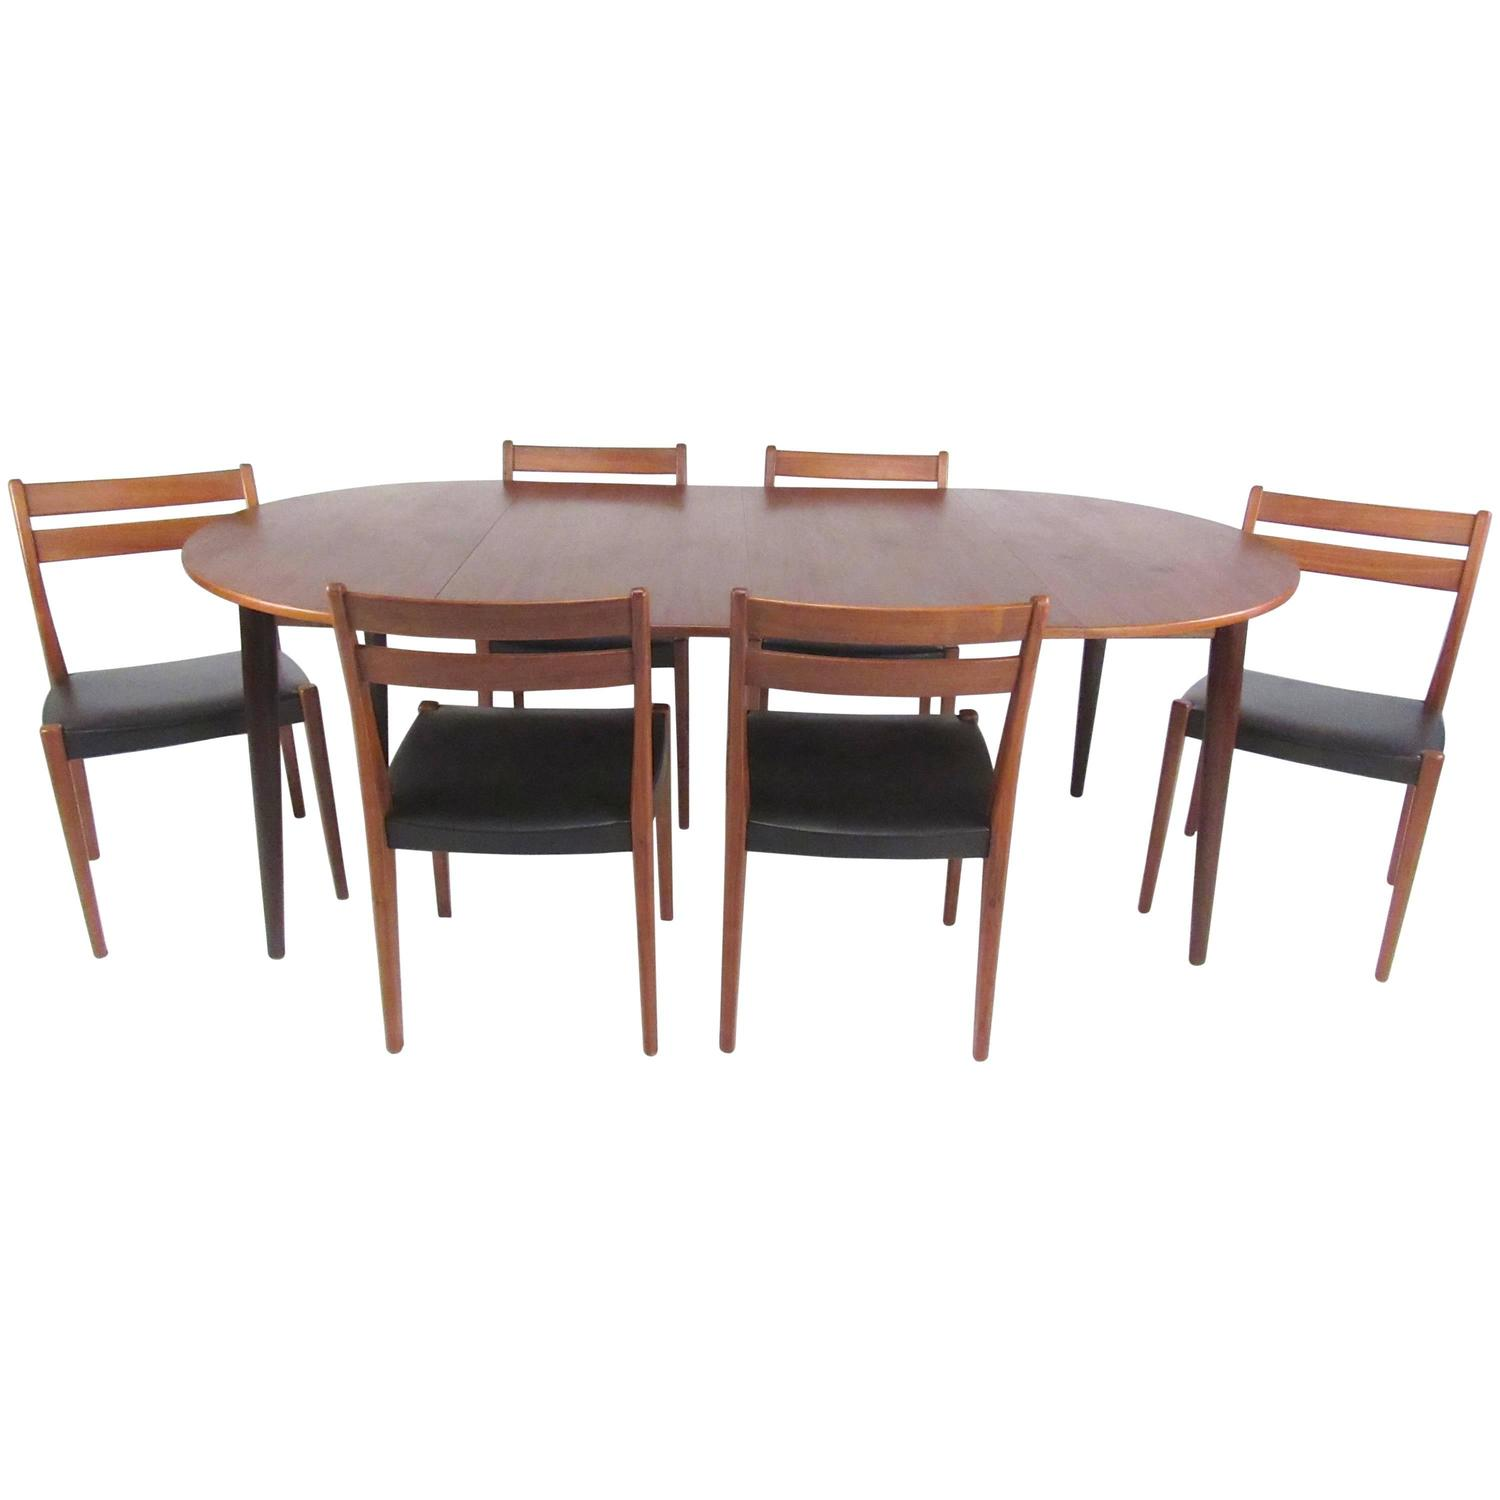 Mid century modern scandinavian teak dining set with for Mid century modern dining table